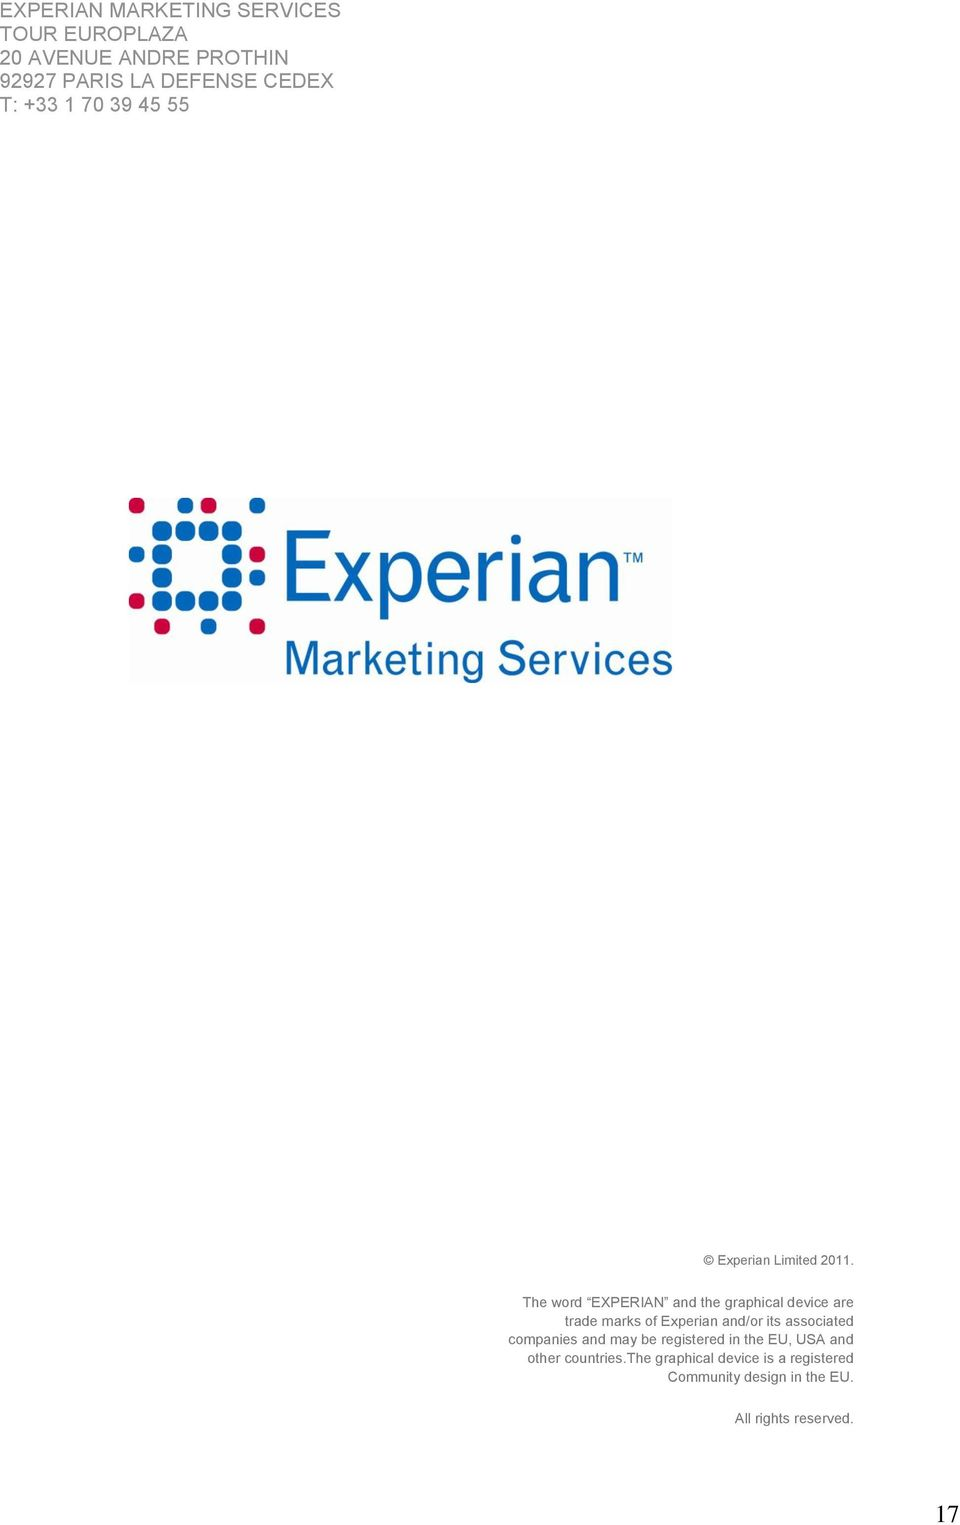 The word EXPERIAN and the graphical device are trade marks of Experian and/or its associated